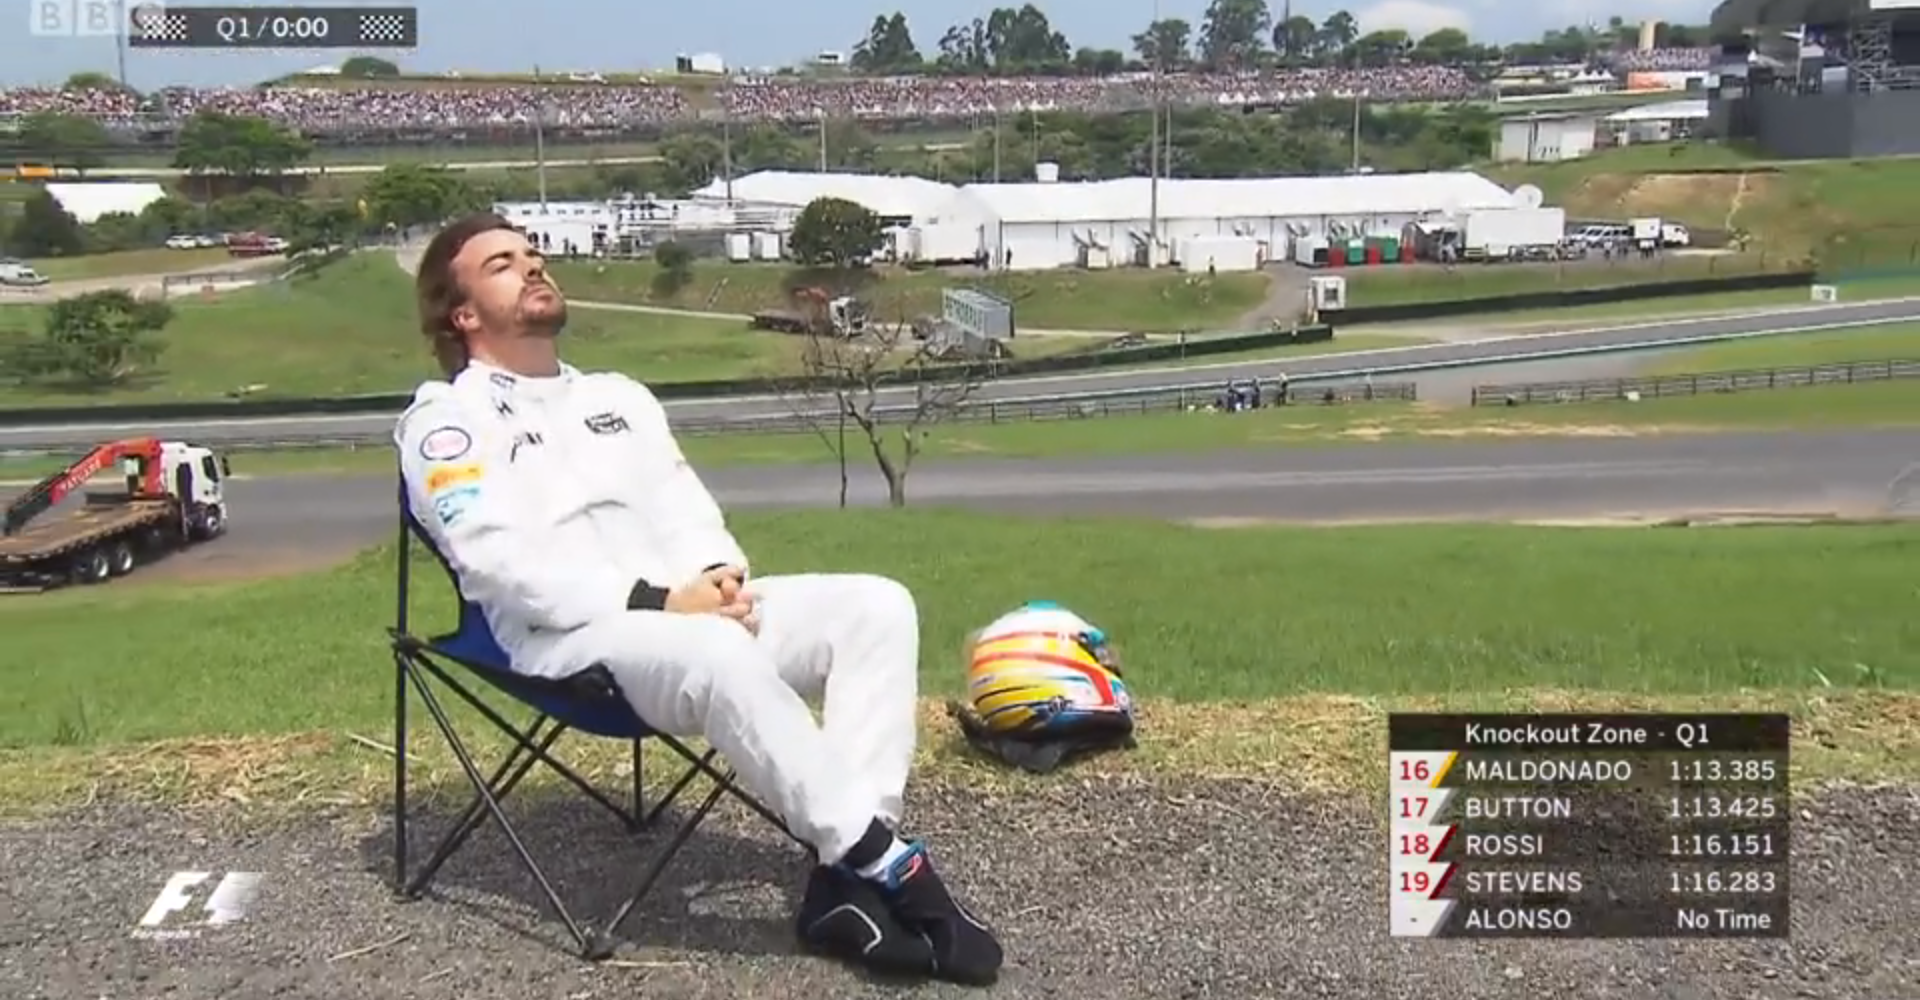 Alonso Ends Up On The Moon – And Other Genius Images Inspired By Brazil Fail Sunbathe